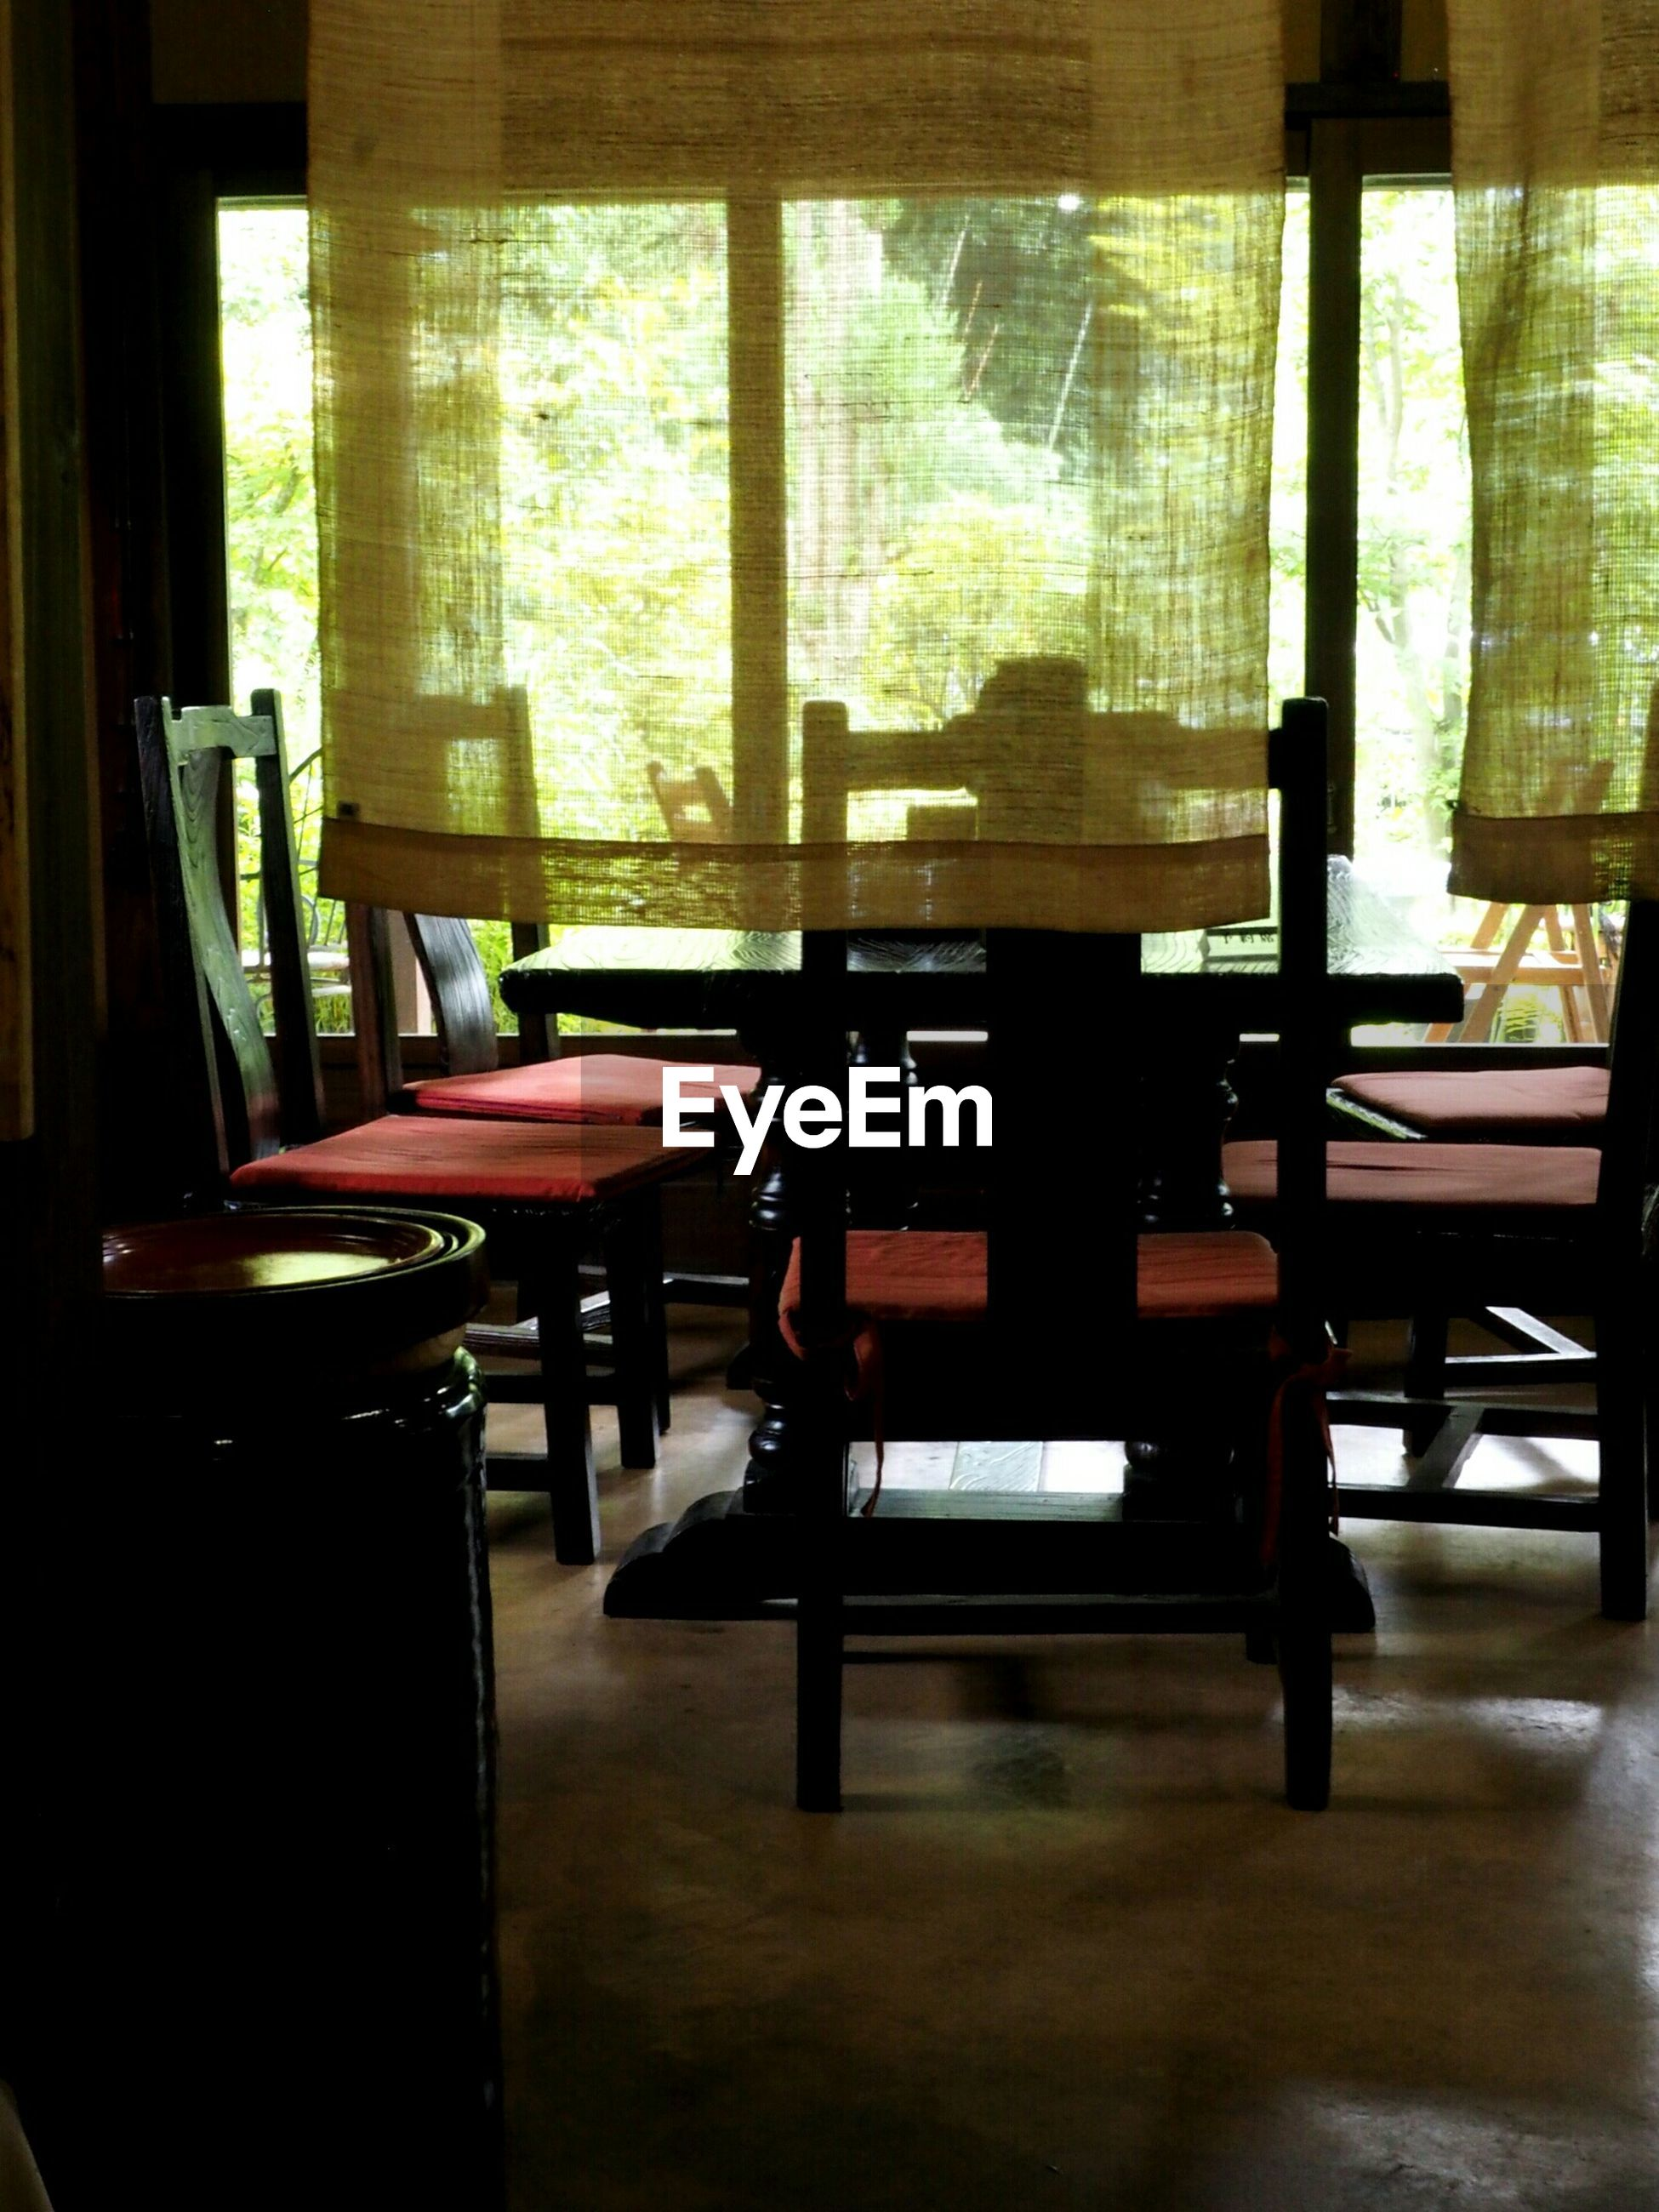 indoors, chair, table, absence, empty, window, home interior, restaurant, furniture, curtain, domestic room, living room, dining table, sitting, sofa, glass - material, home showcase interior, relaxation, domestic life, seat